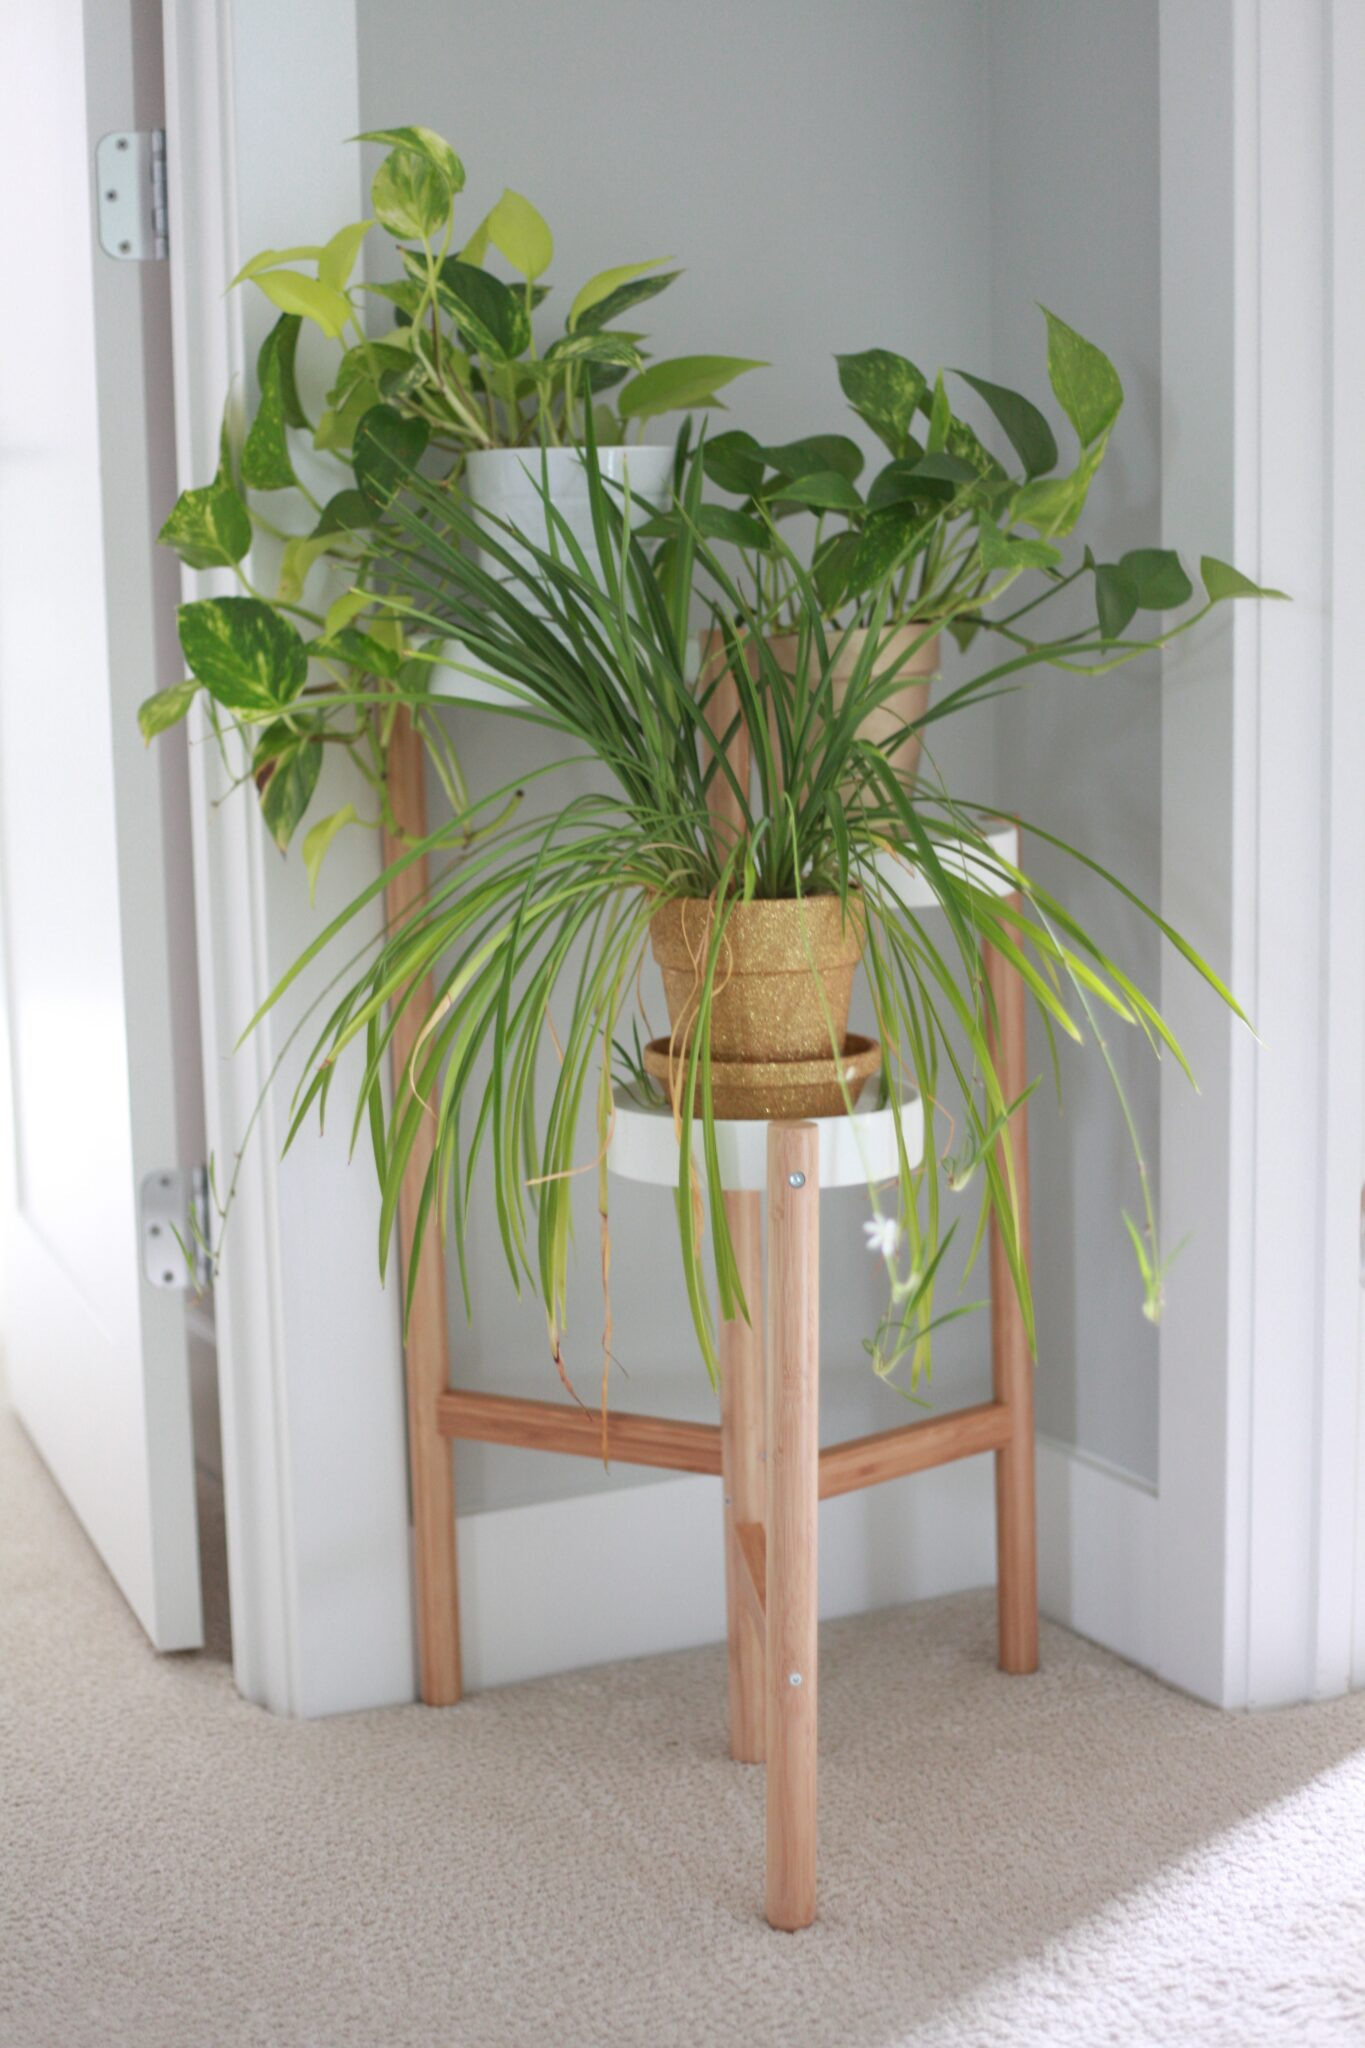 spider plant care - how to grow and propagate